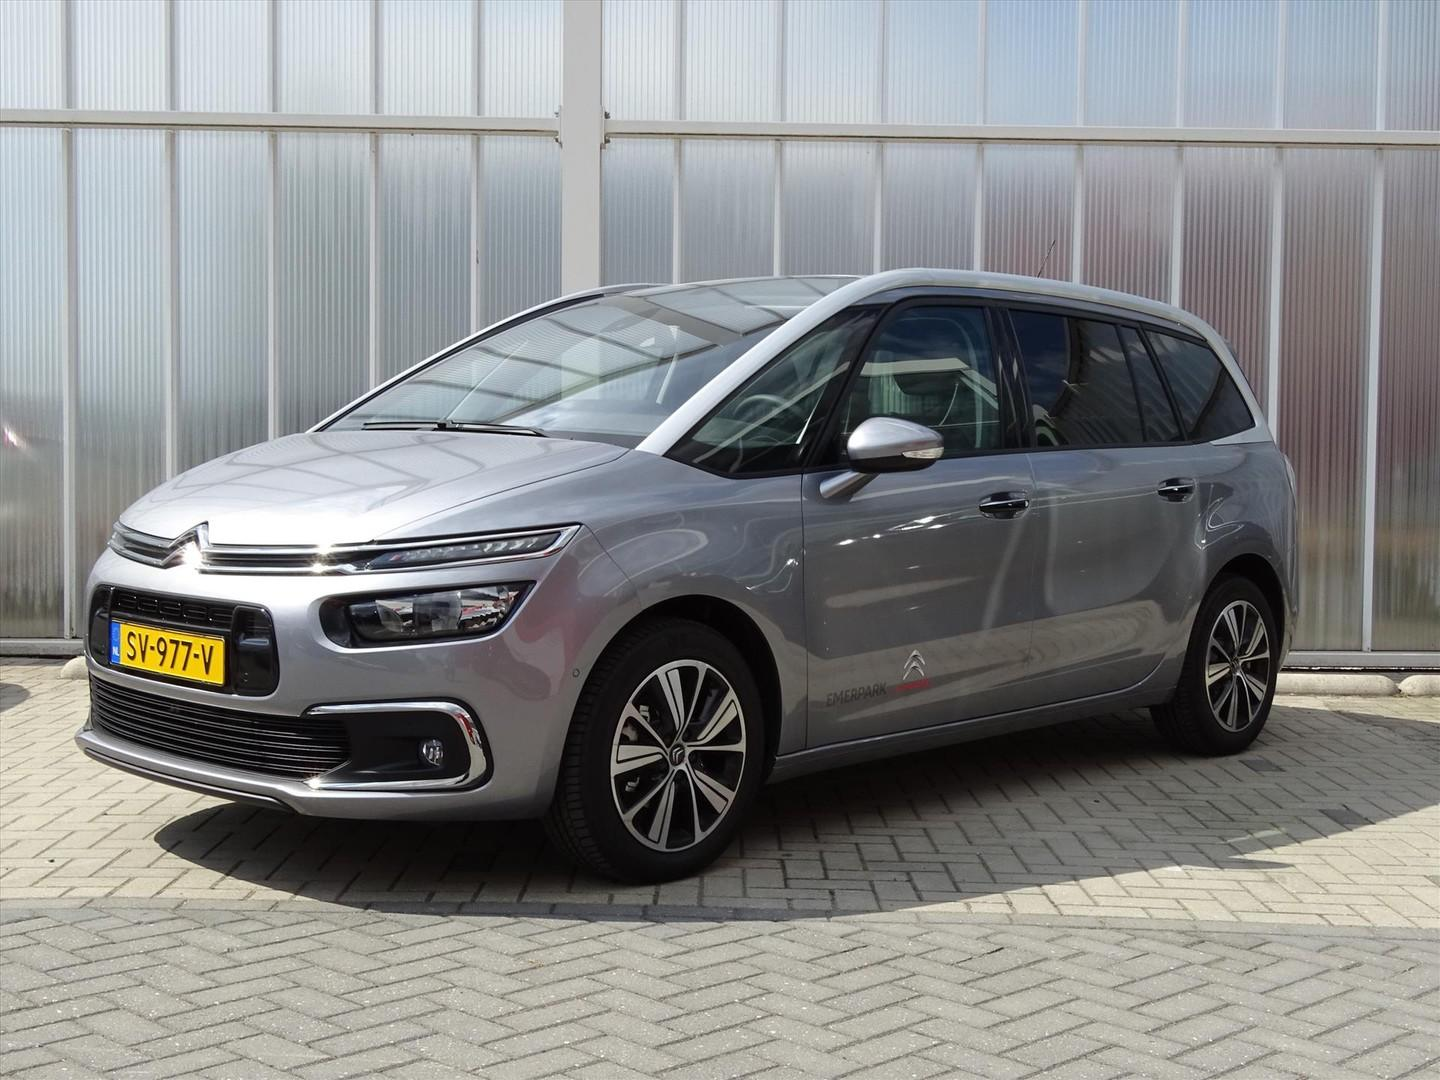 Citroën Grand c4 picasso Business 1.6 bluehdi 120pk navigatie